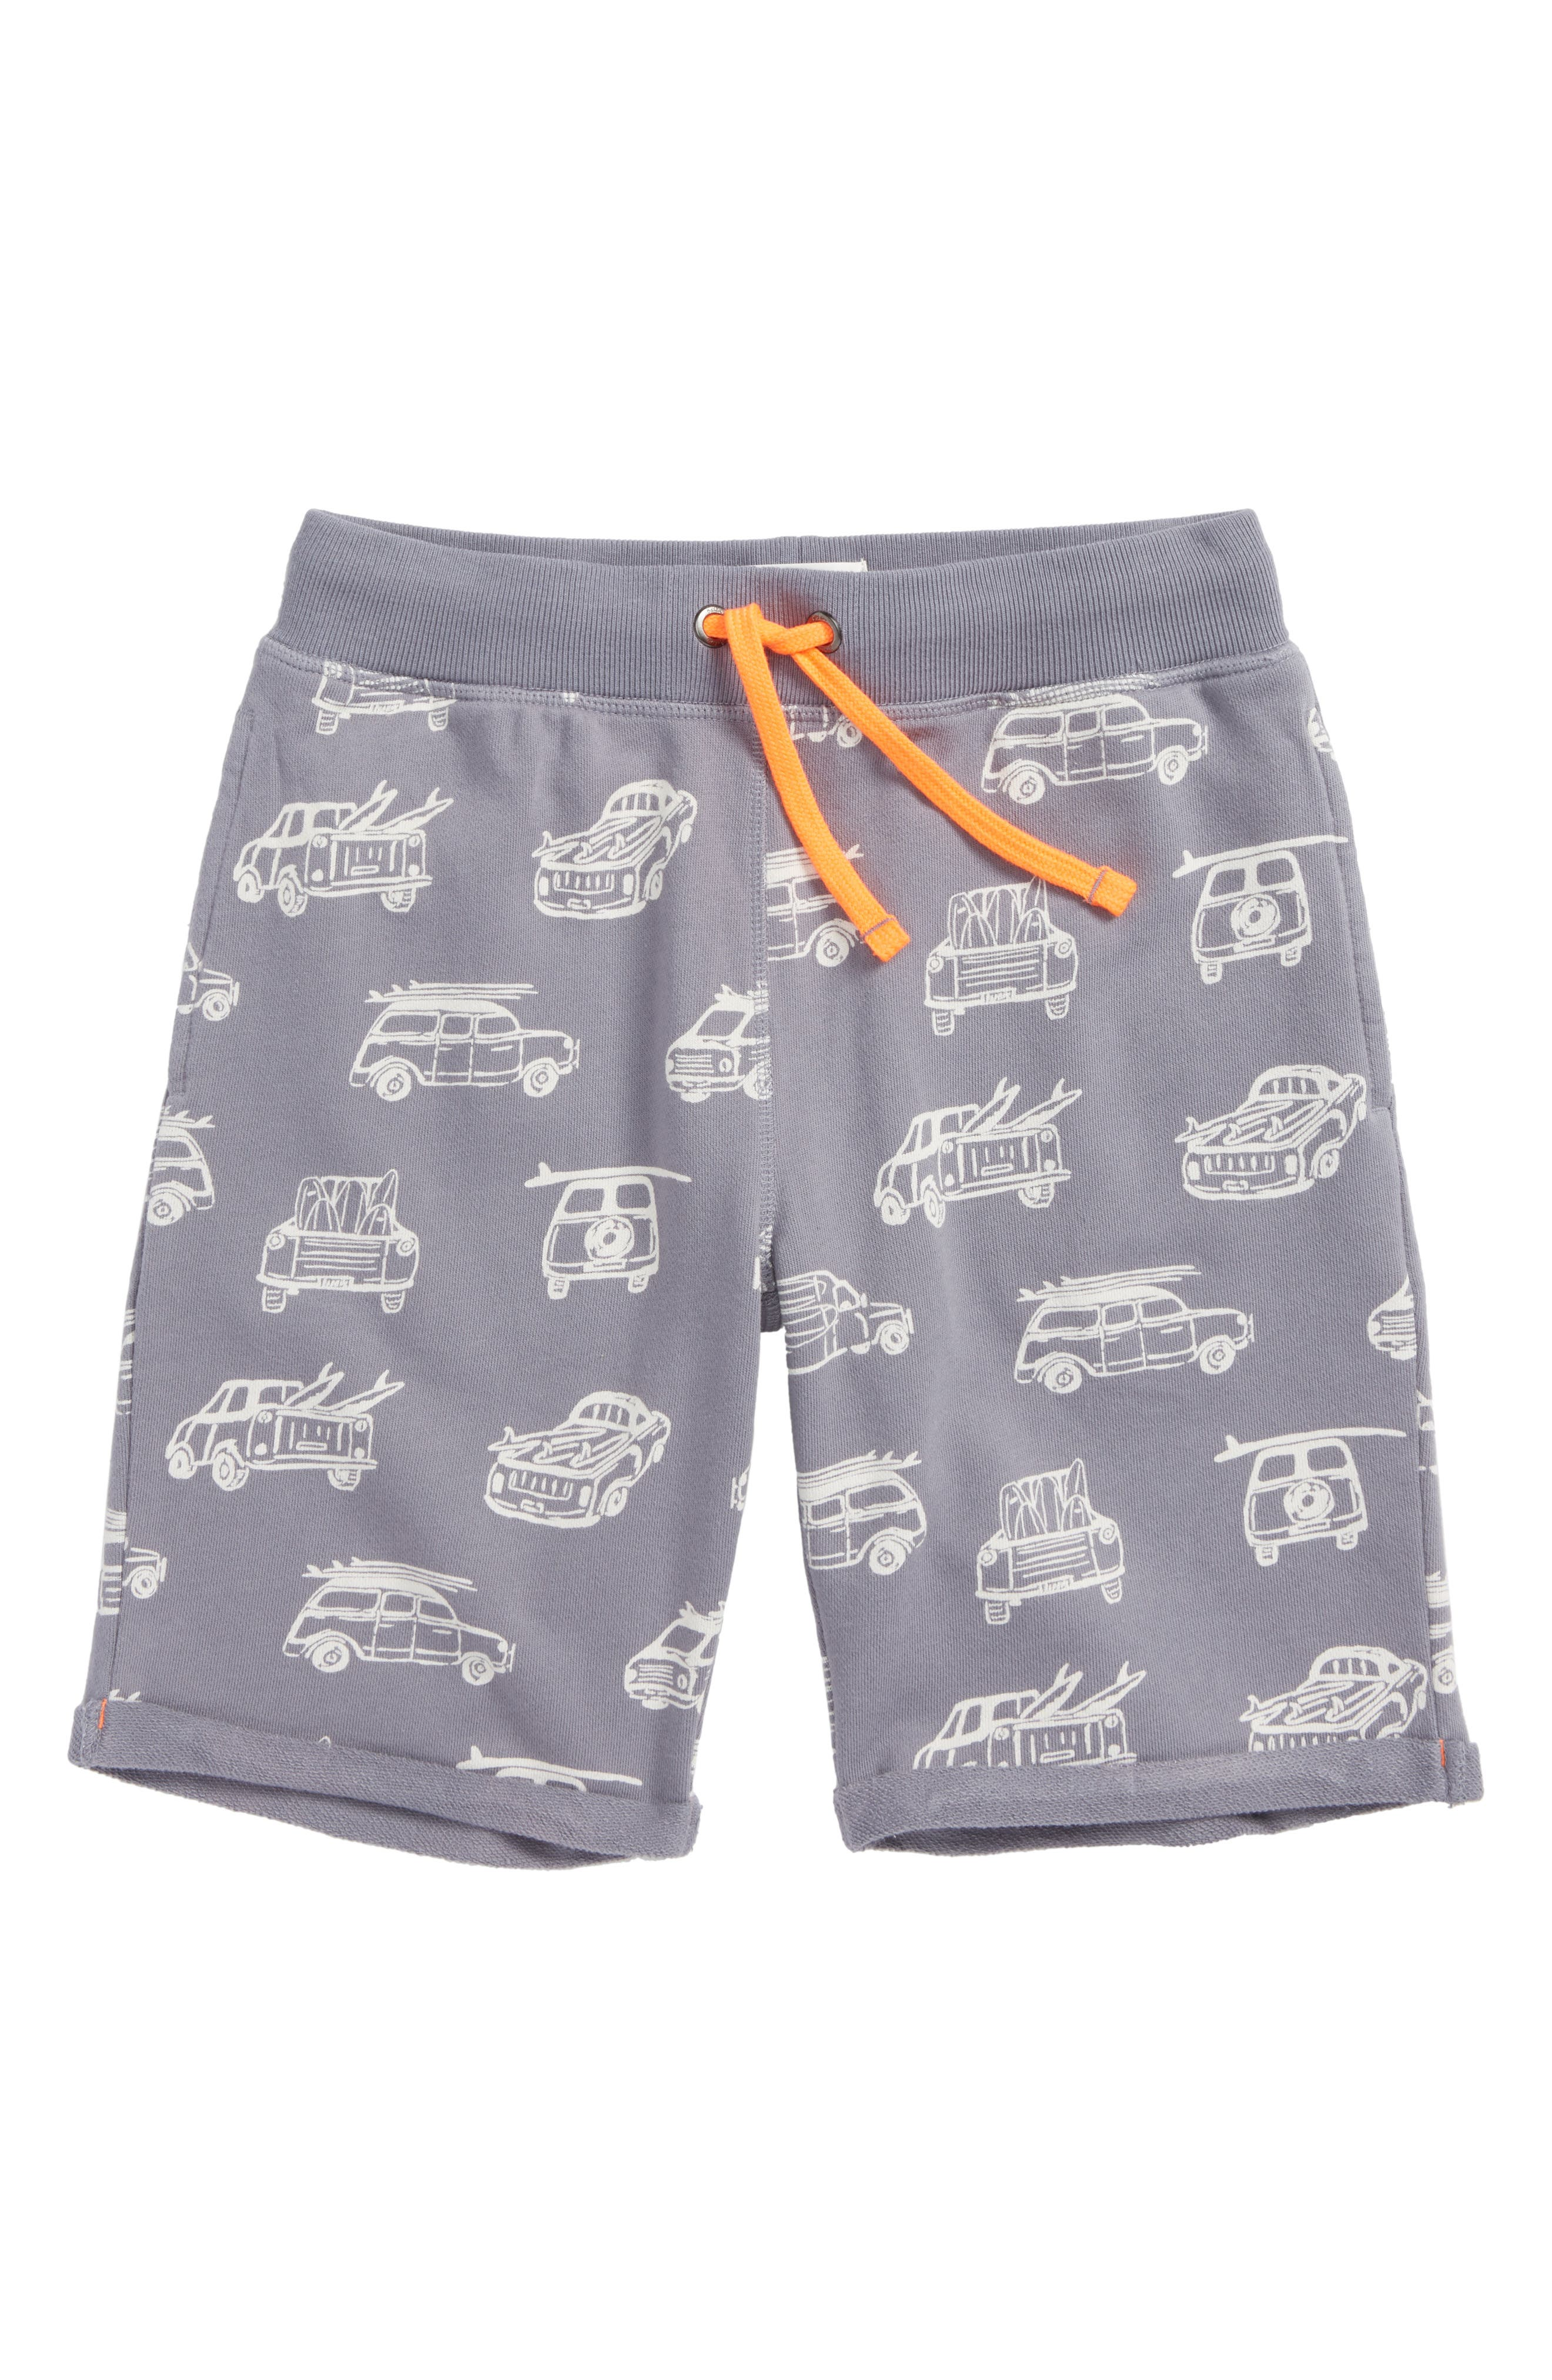 French Terry Shorts,                         Main,                         color, Raft Grey Surf Vans